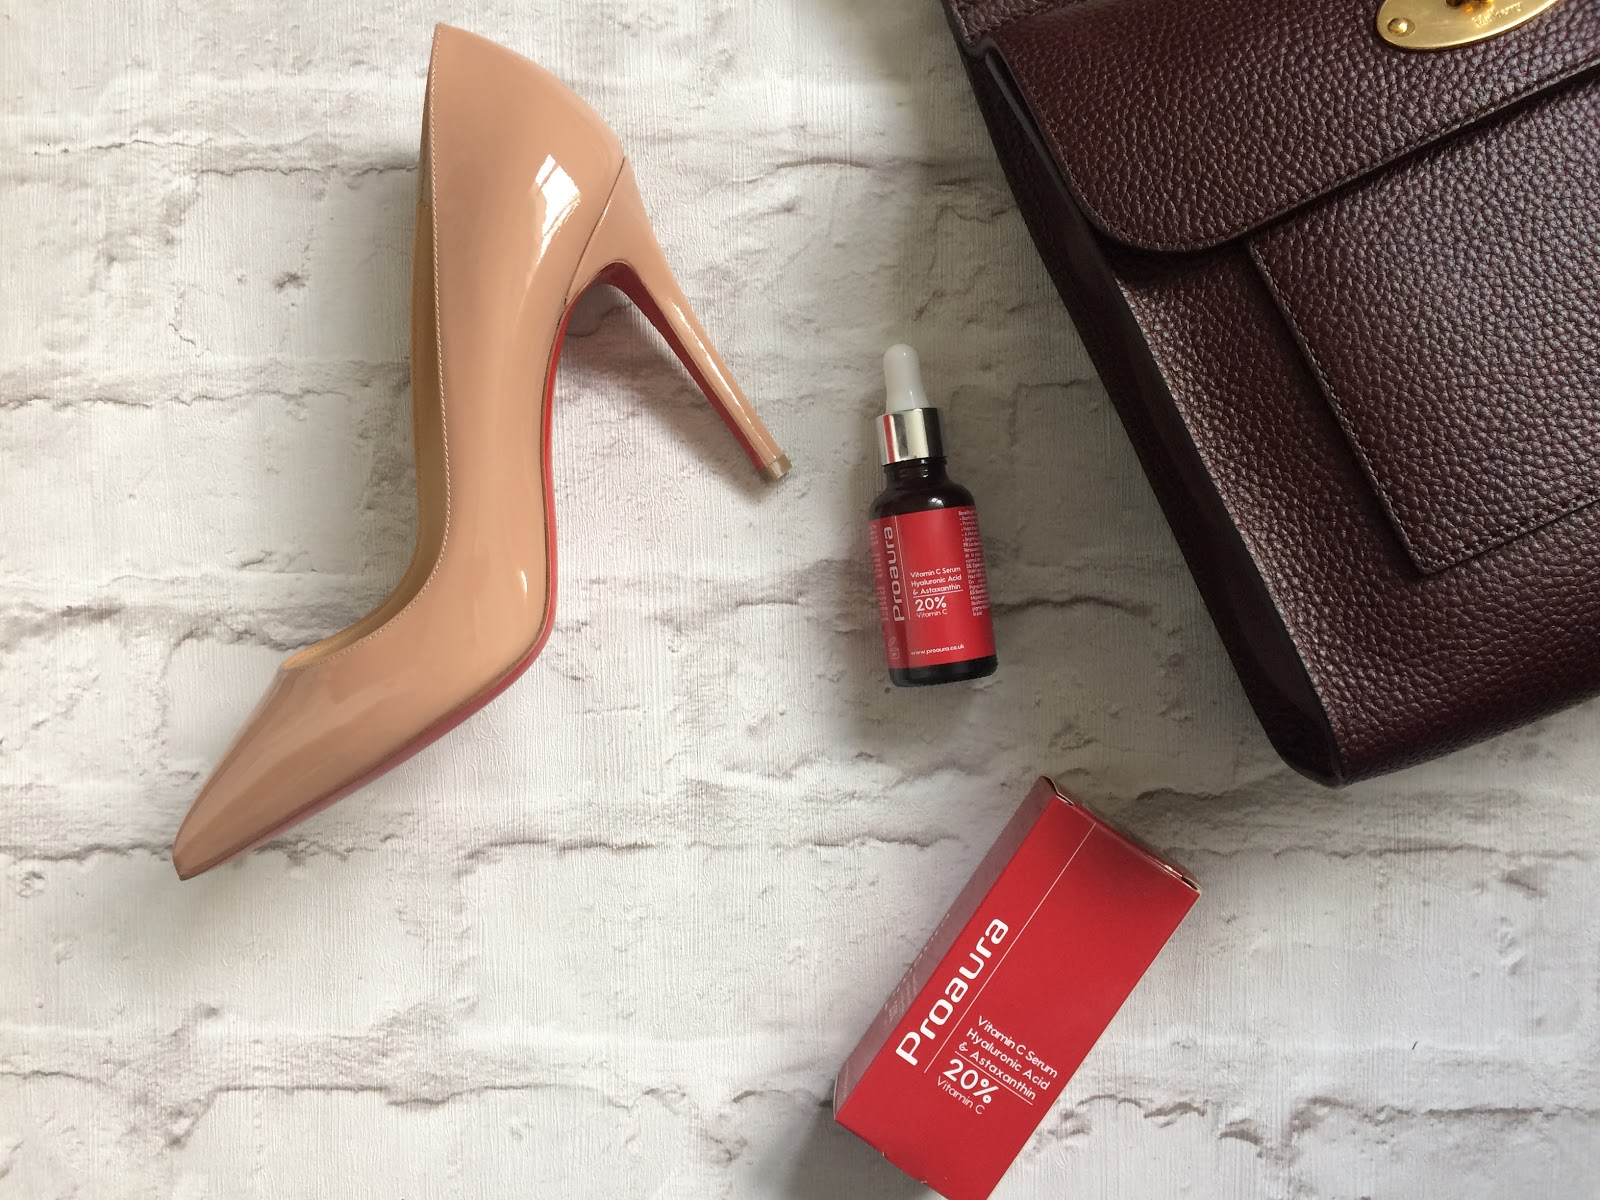 Proaura Vitamin C with Astaxanthin, Mulberry Antony bag in Oxblood, Louboutin pigalle